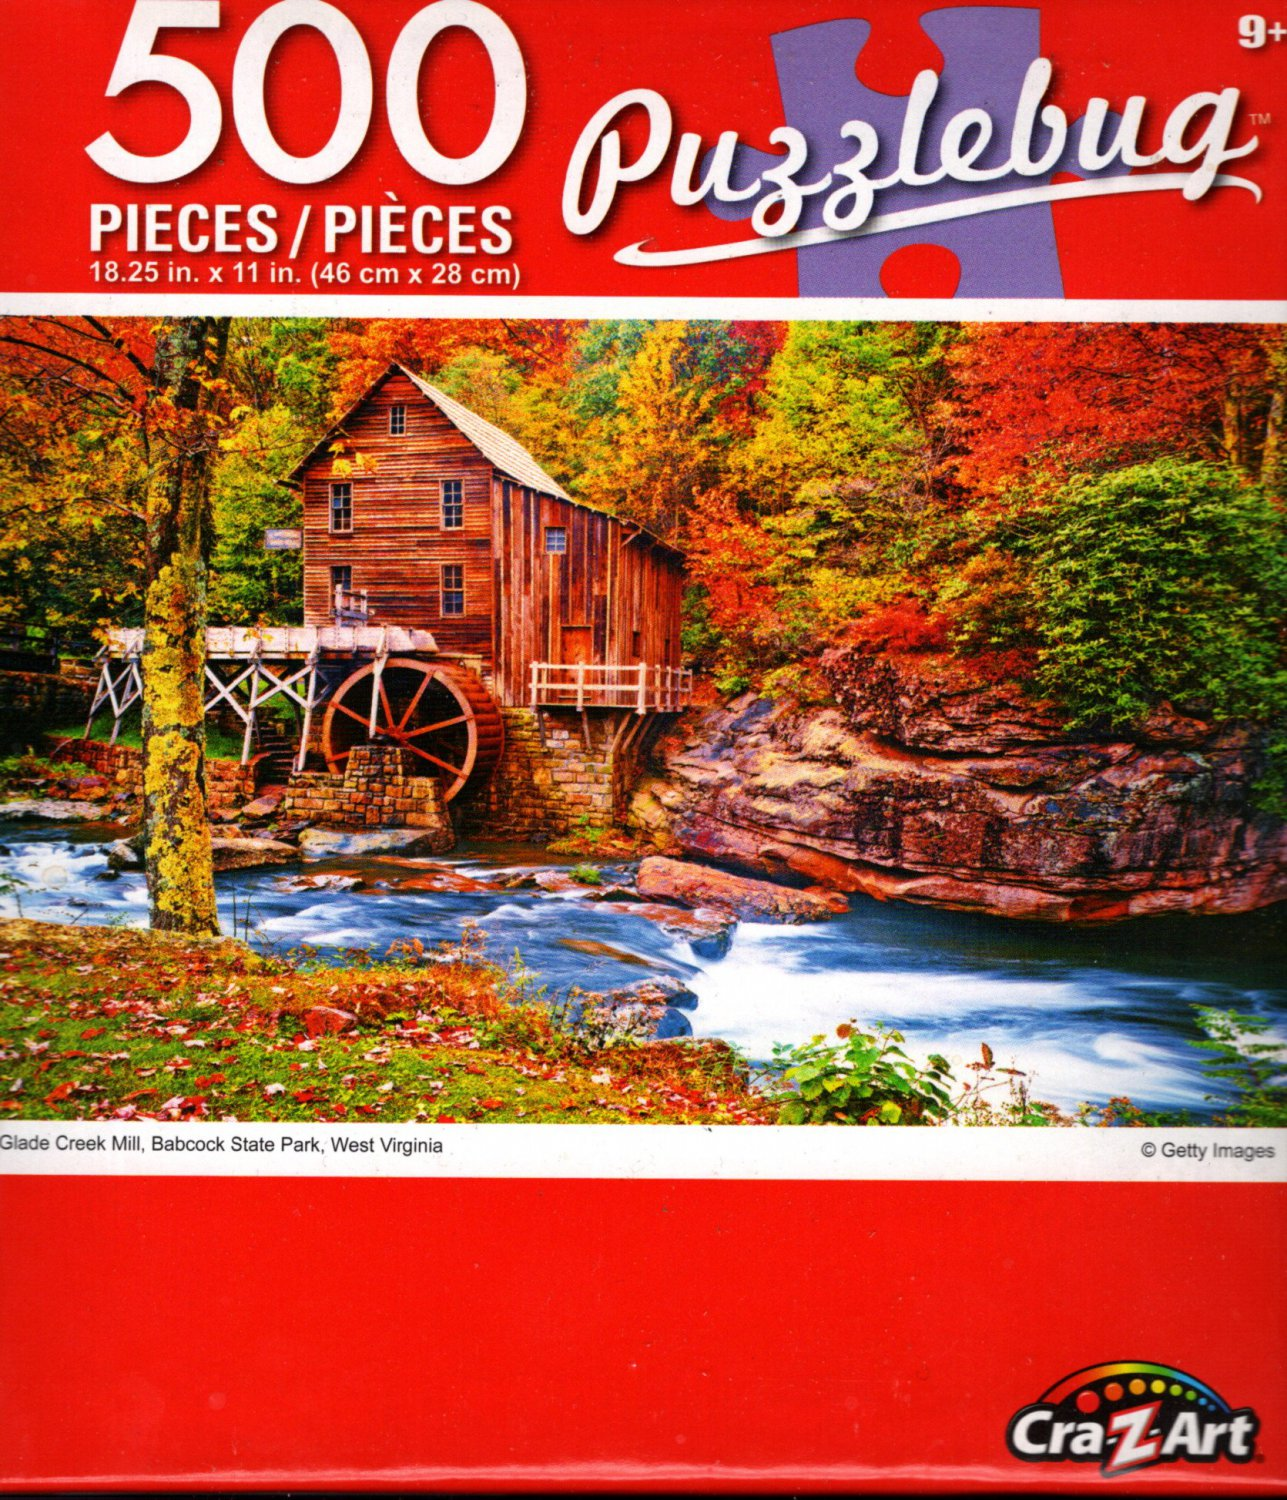 Glade Creek Mill, Babcock State Park, West Virginia - 500 Piece Jigsaw Puzzle - p005